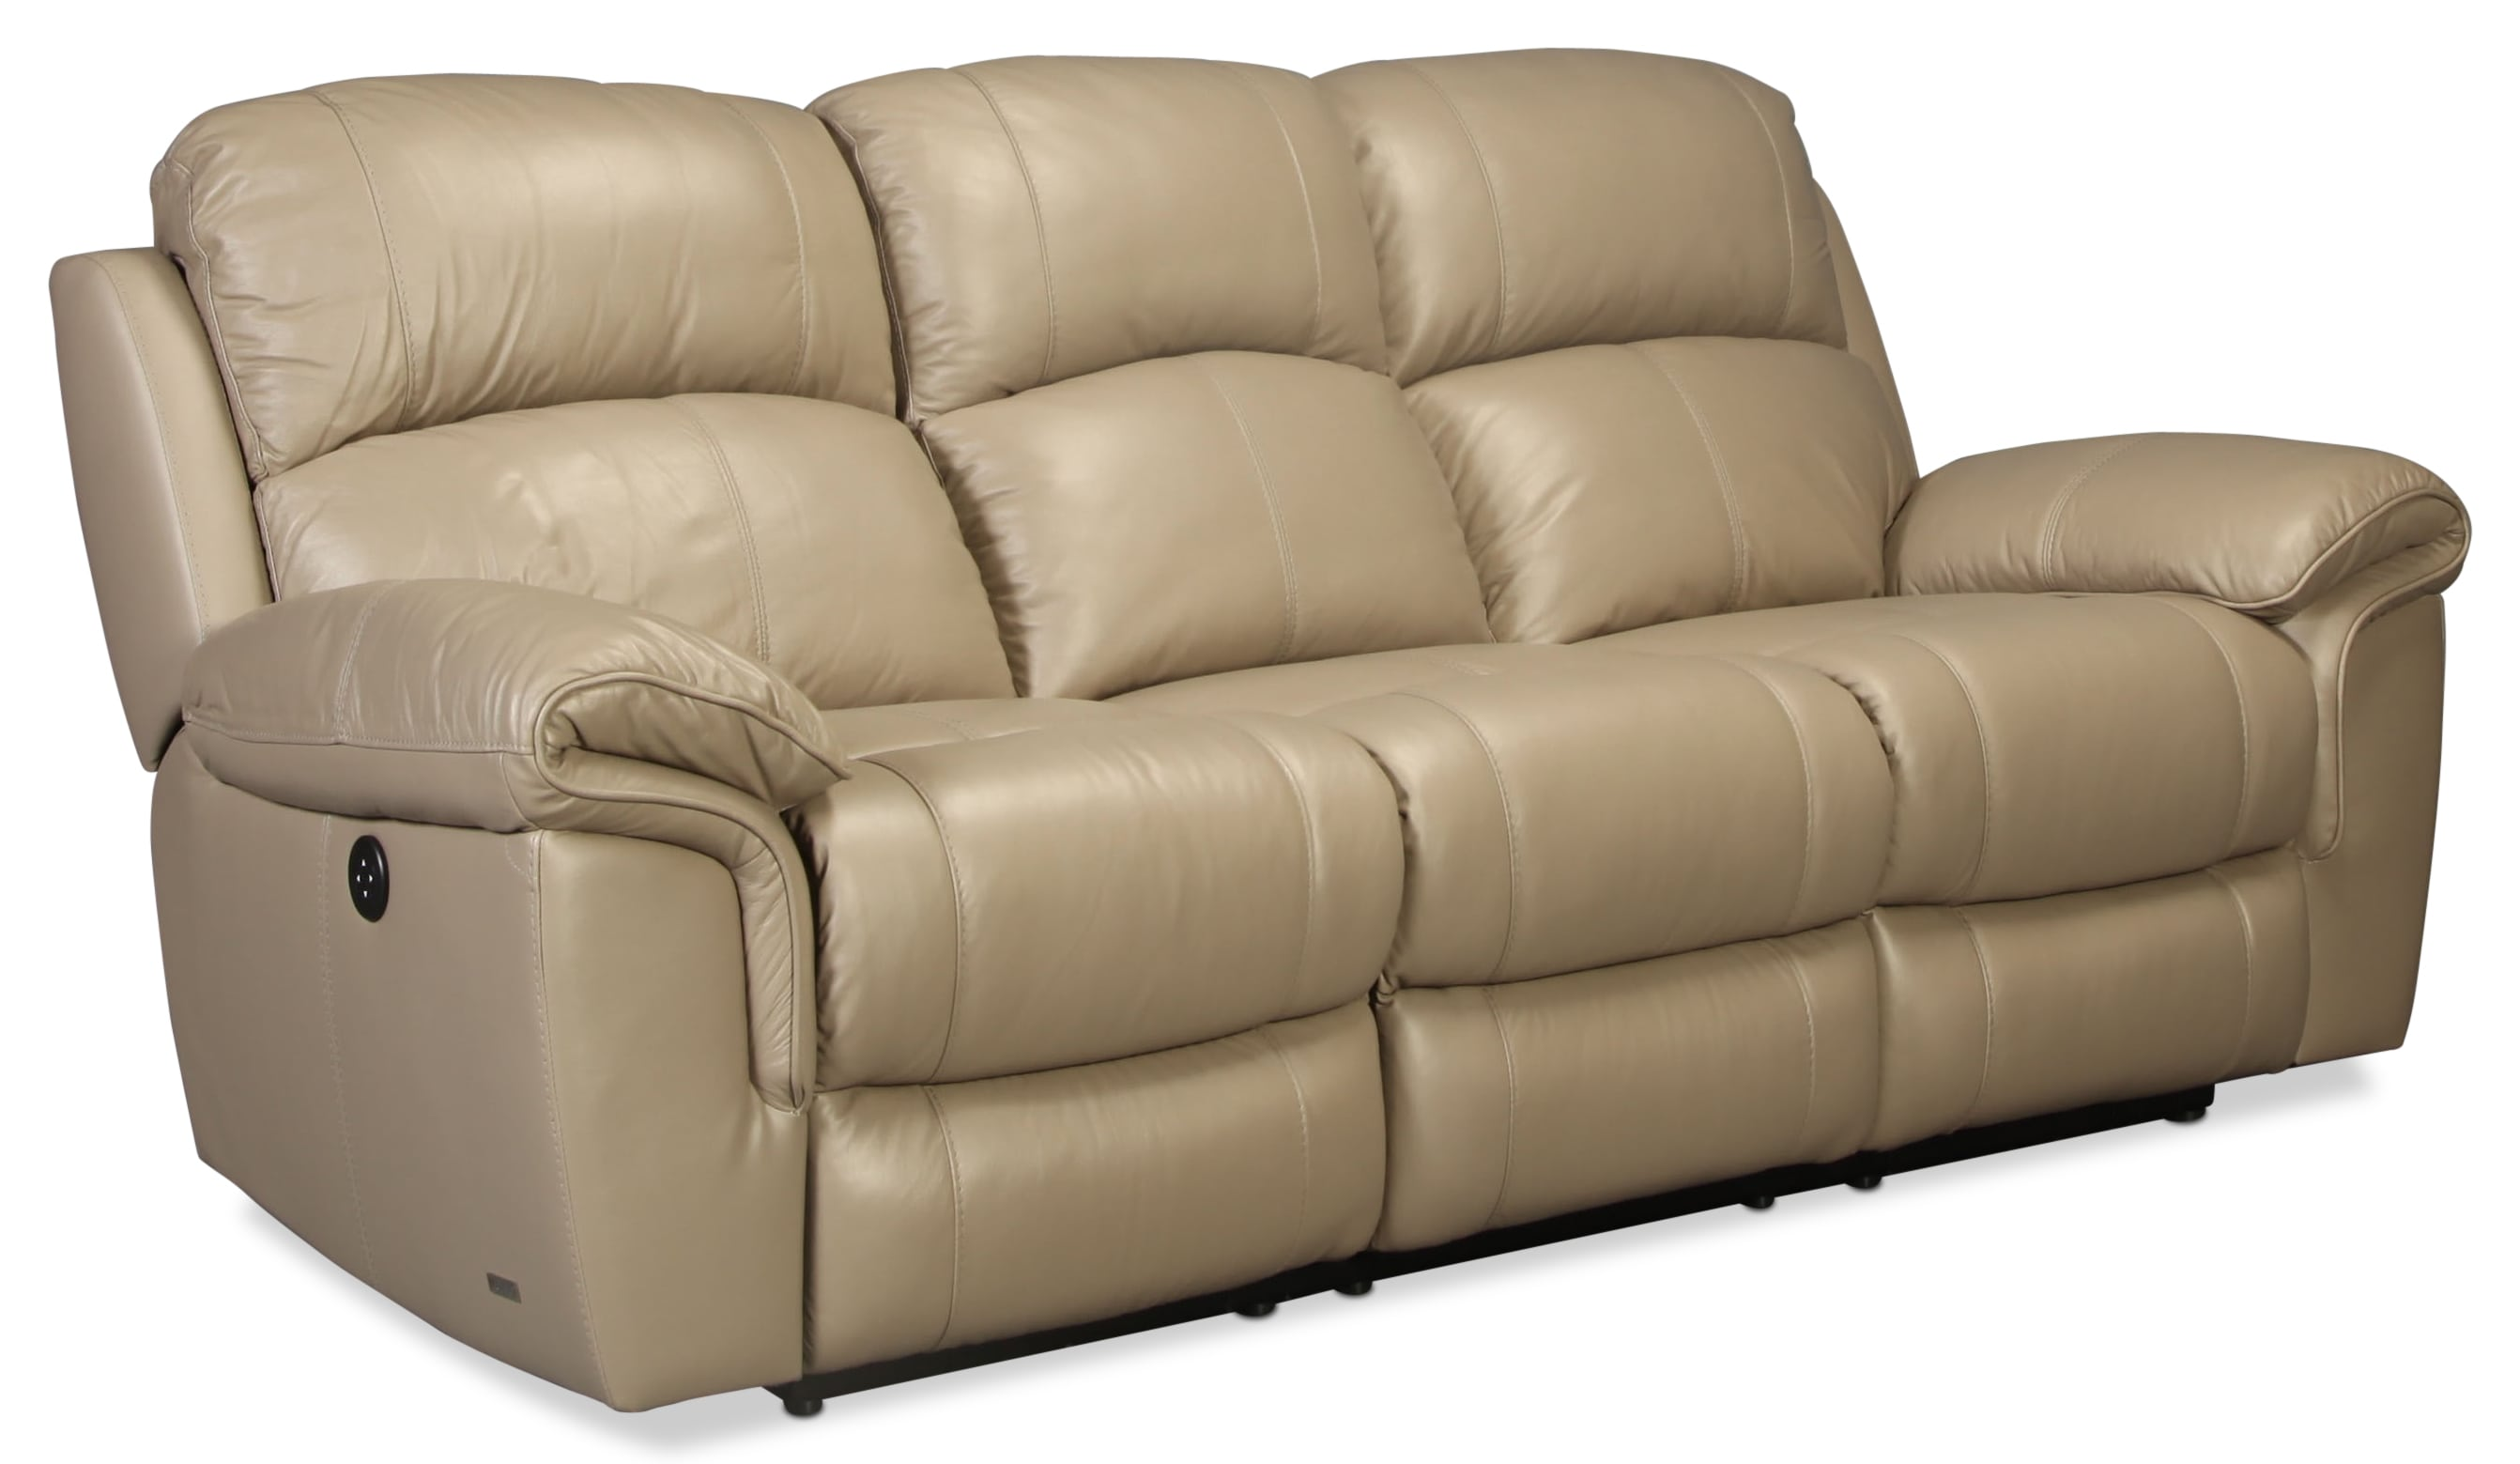 Braxton Power Reclining Sofa Levin Furniture